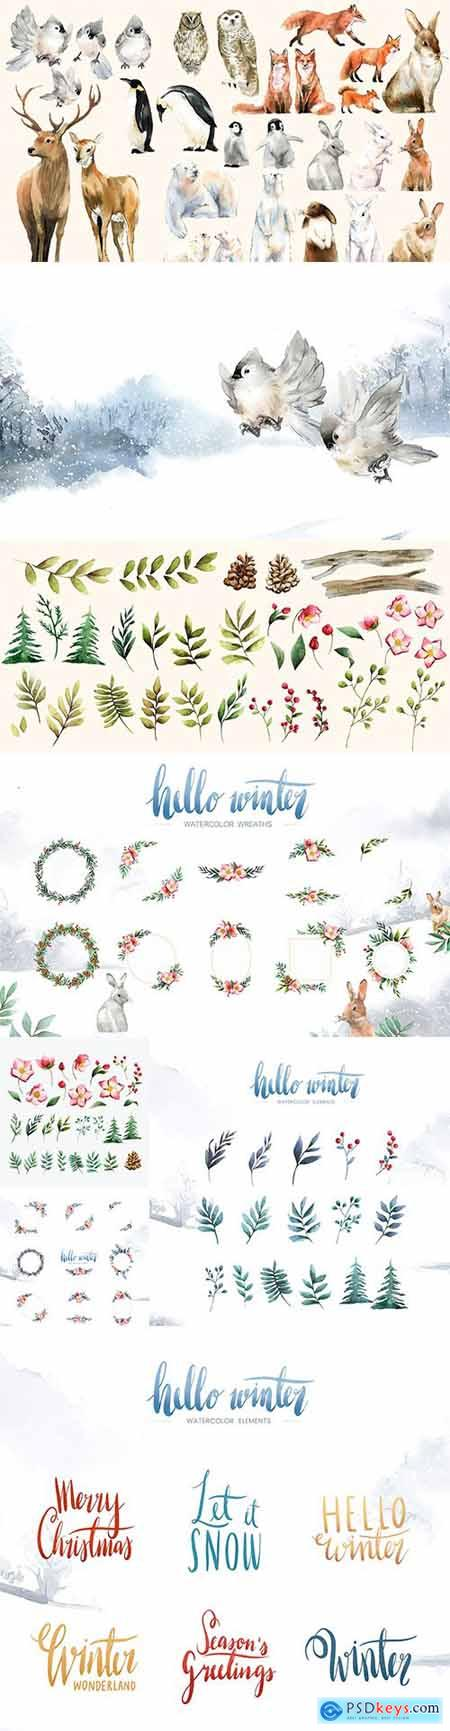 Set of Winter Hand-Drawn Wildlife Watercolor Bloom and Elements Vector